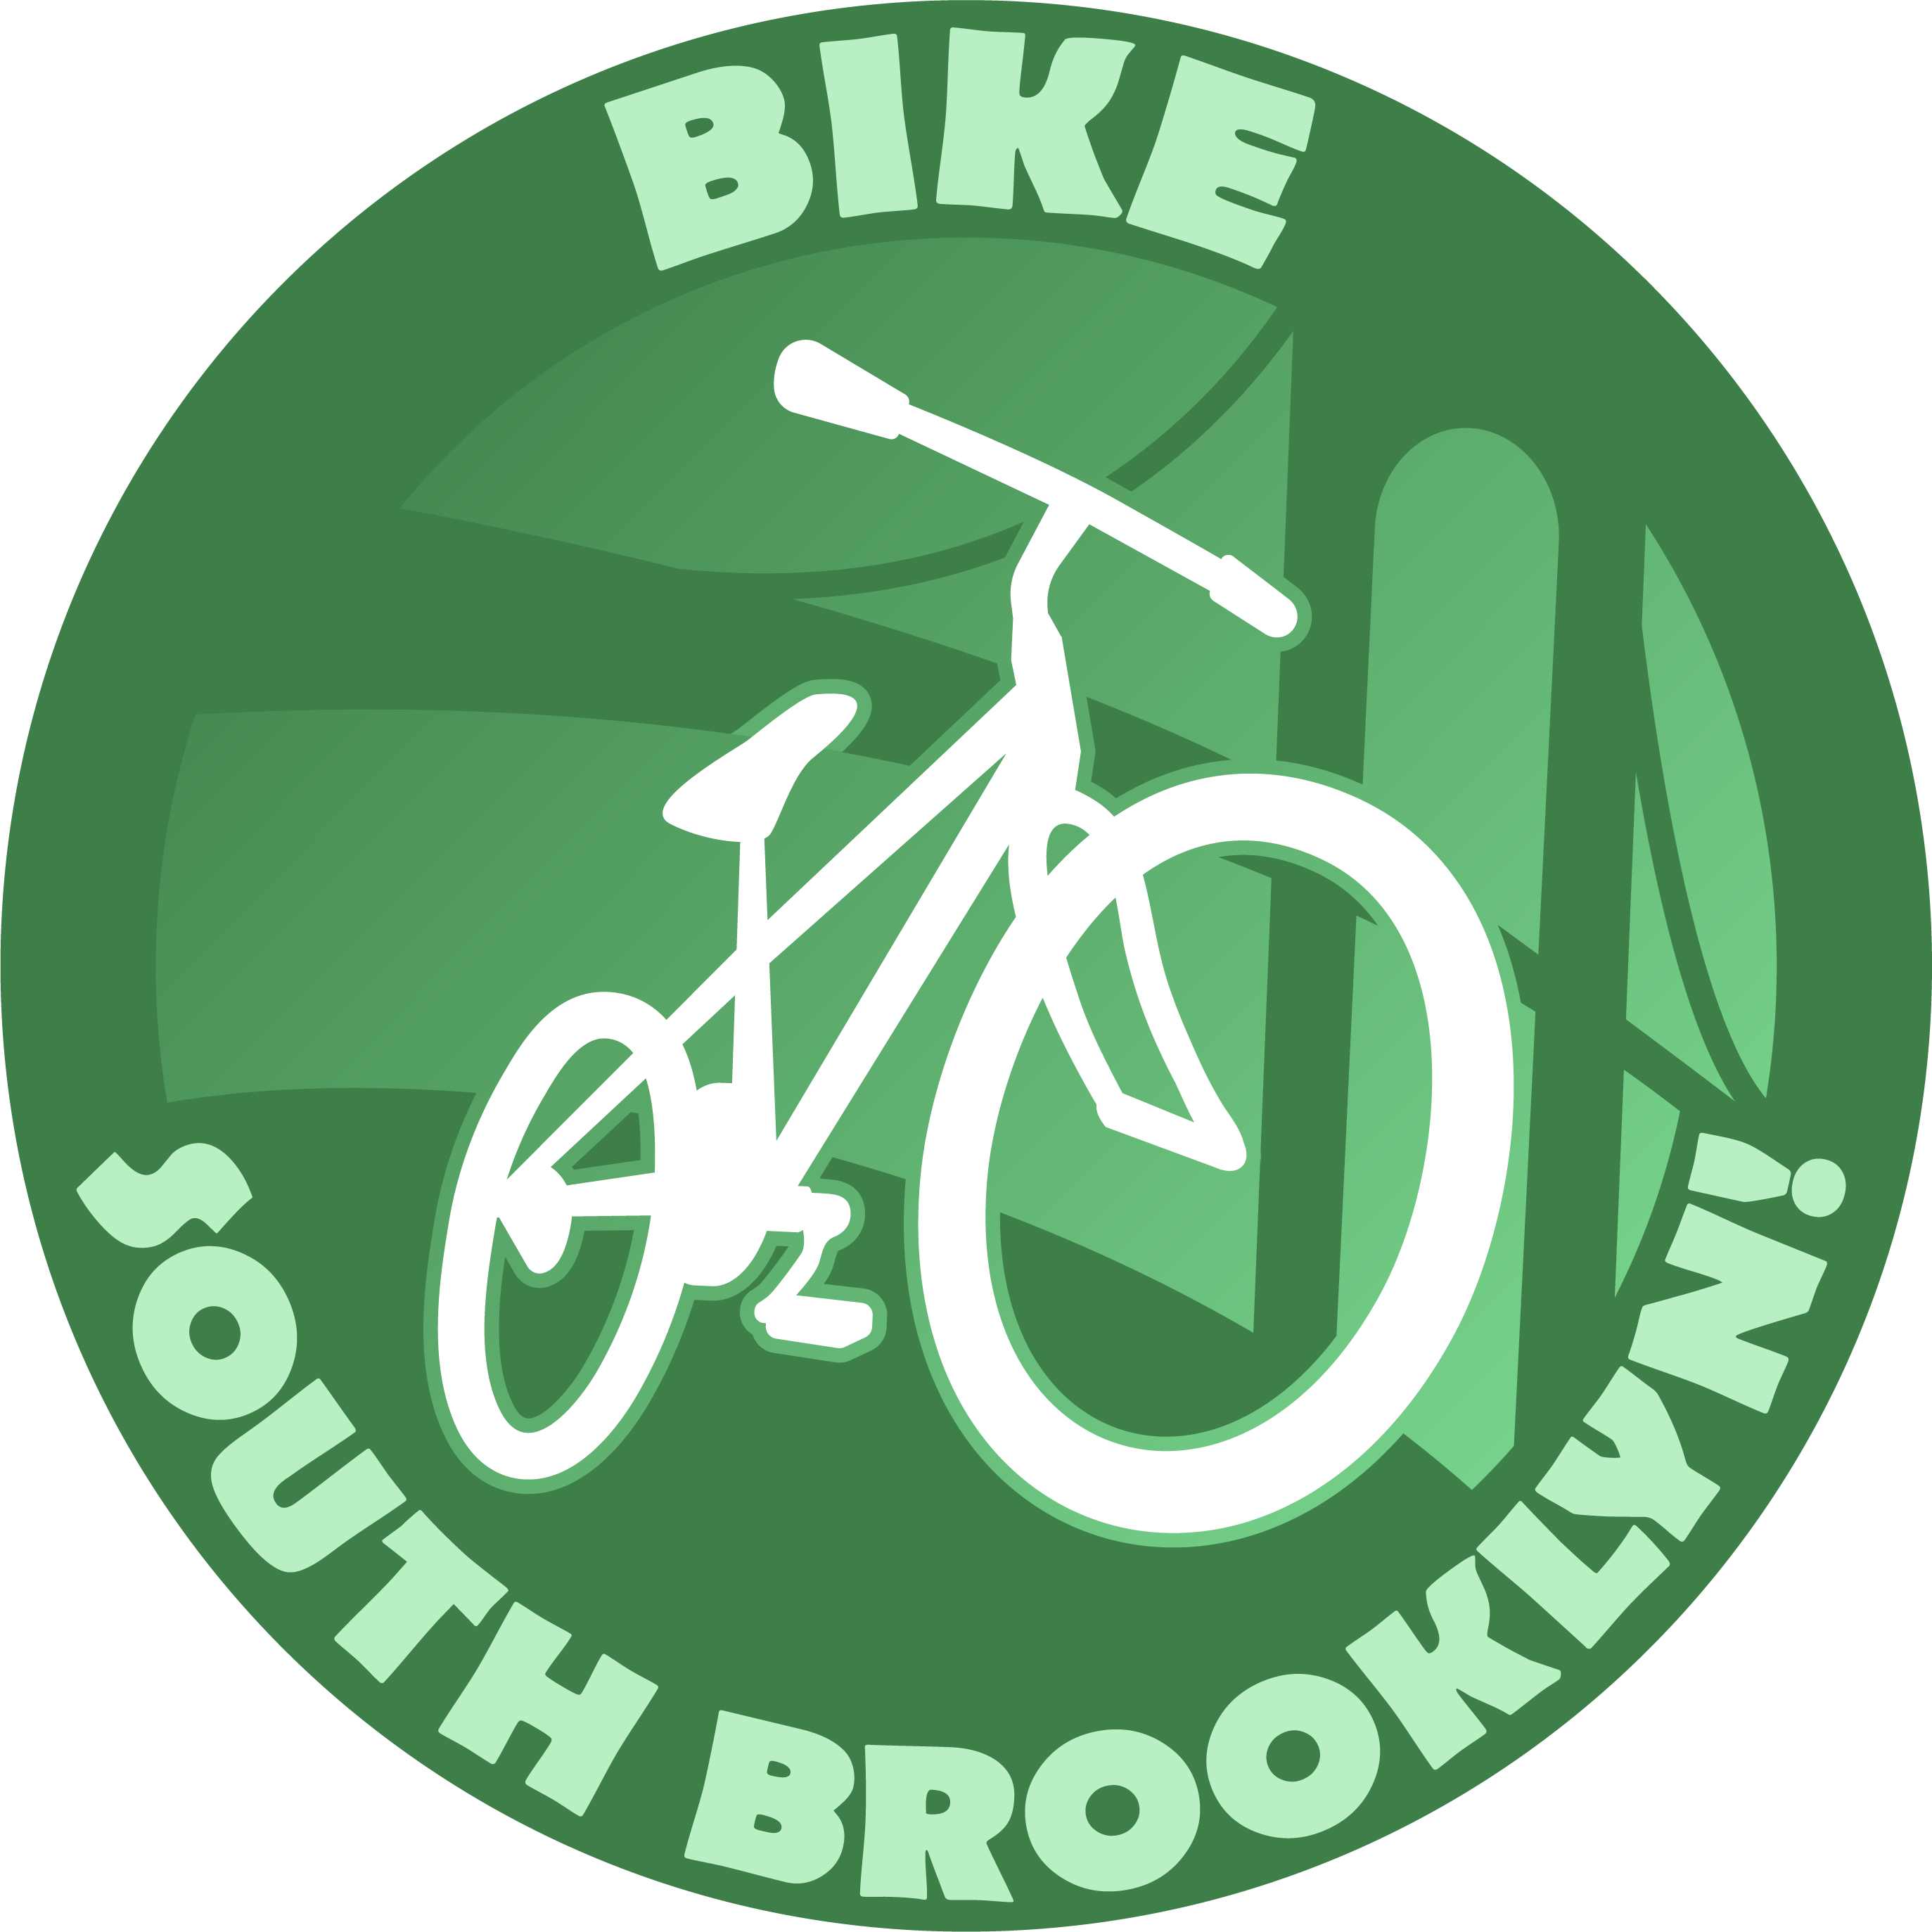 Bike South Brooklyn!